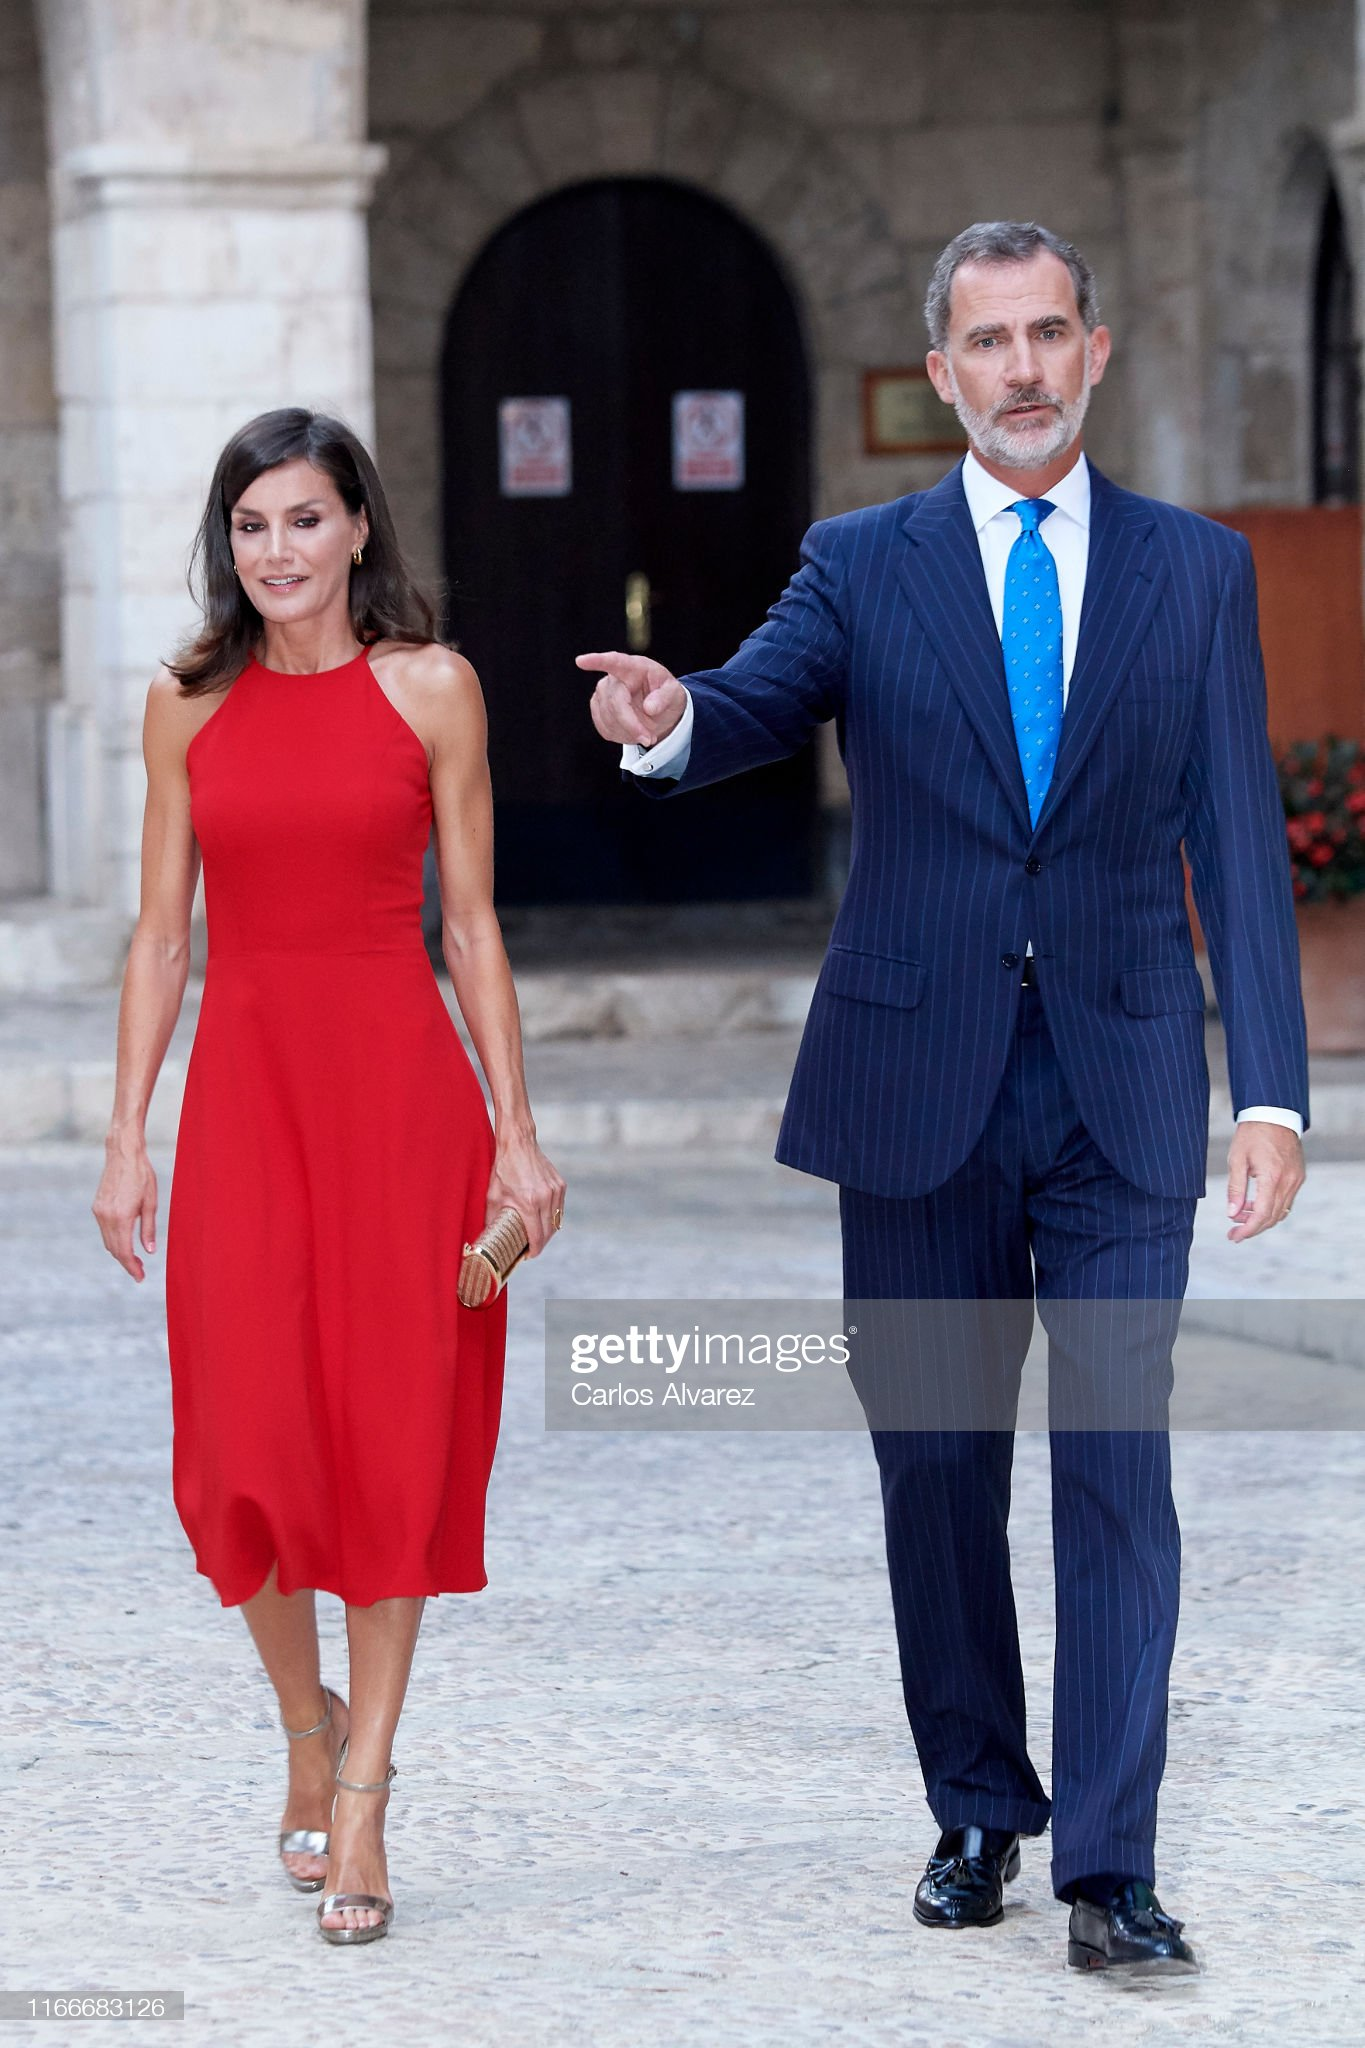 https://media.gettyimages.com/photos/king-felipe-vi-of-spain-and-queen-letizia-of-spain-host-a-dinner-for-picture-id1166683126?s=2048x2048